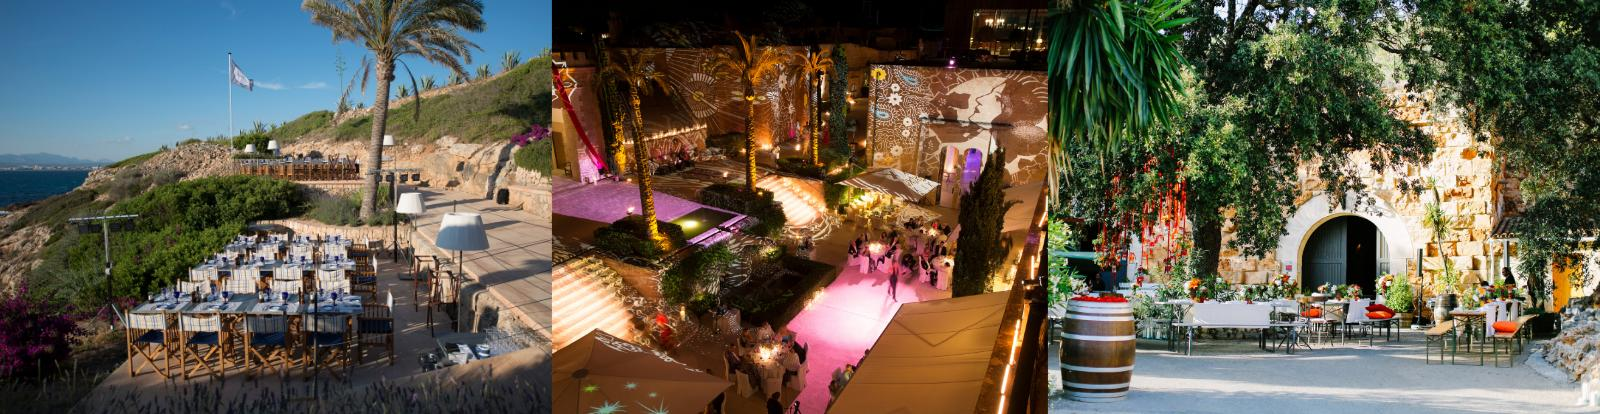 mallorca-event-location